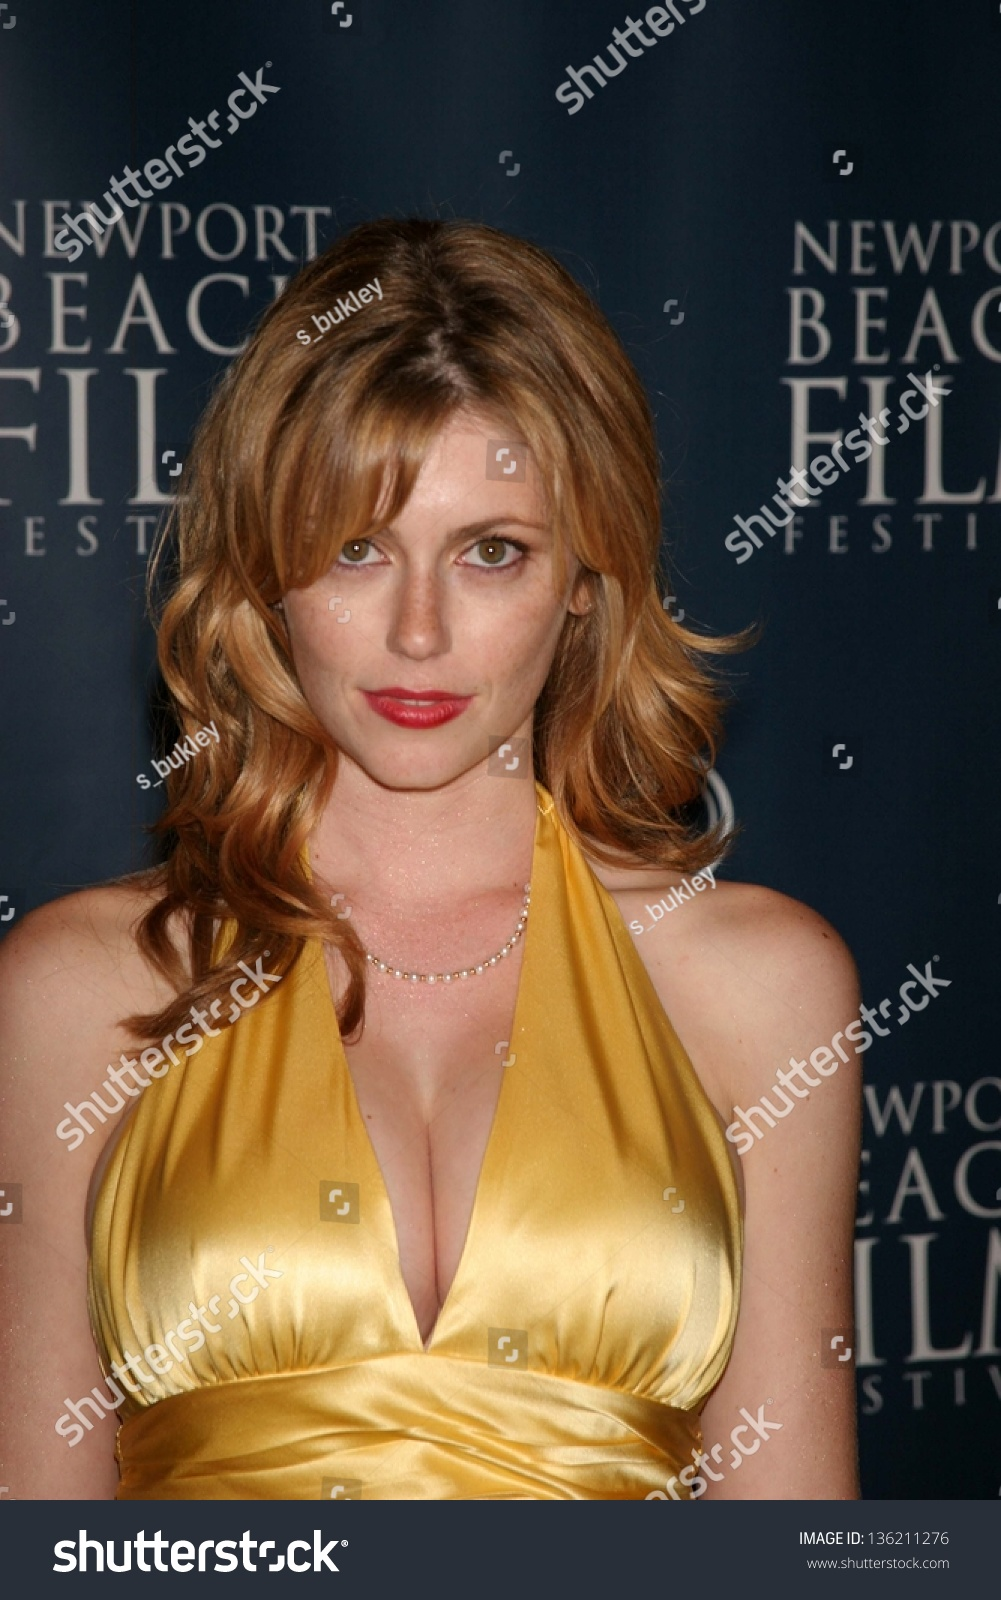 Instagram Diora Baird nudes (46 foto and video), Pussy, Fappening, Twitter, in bikini 2006